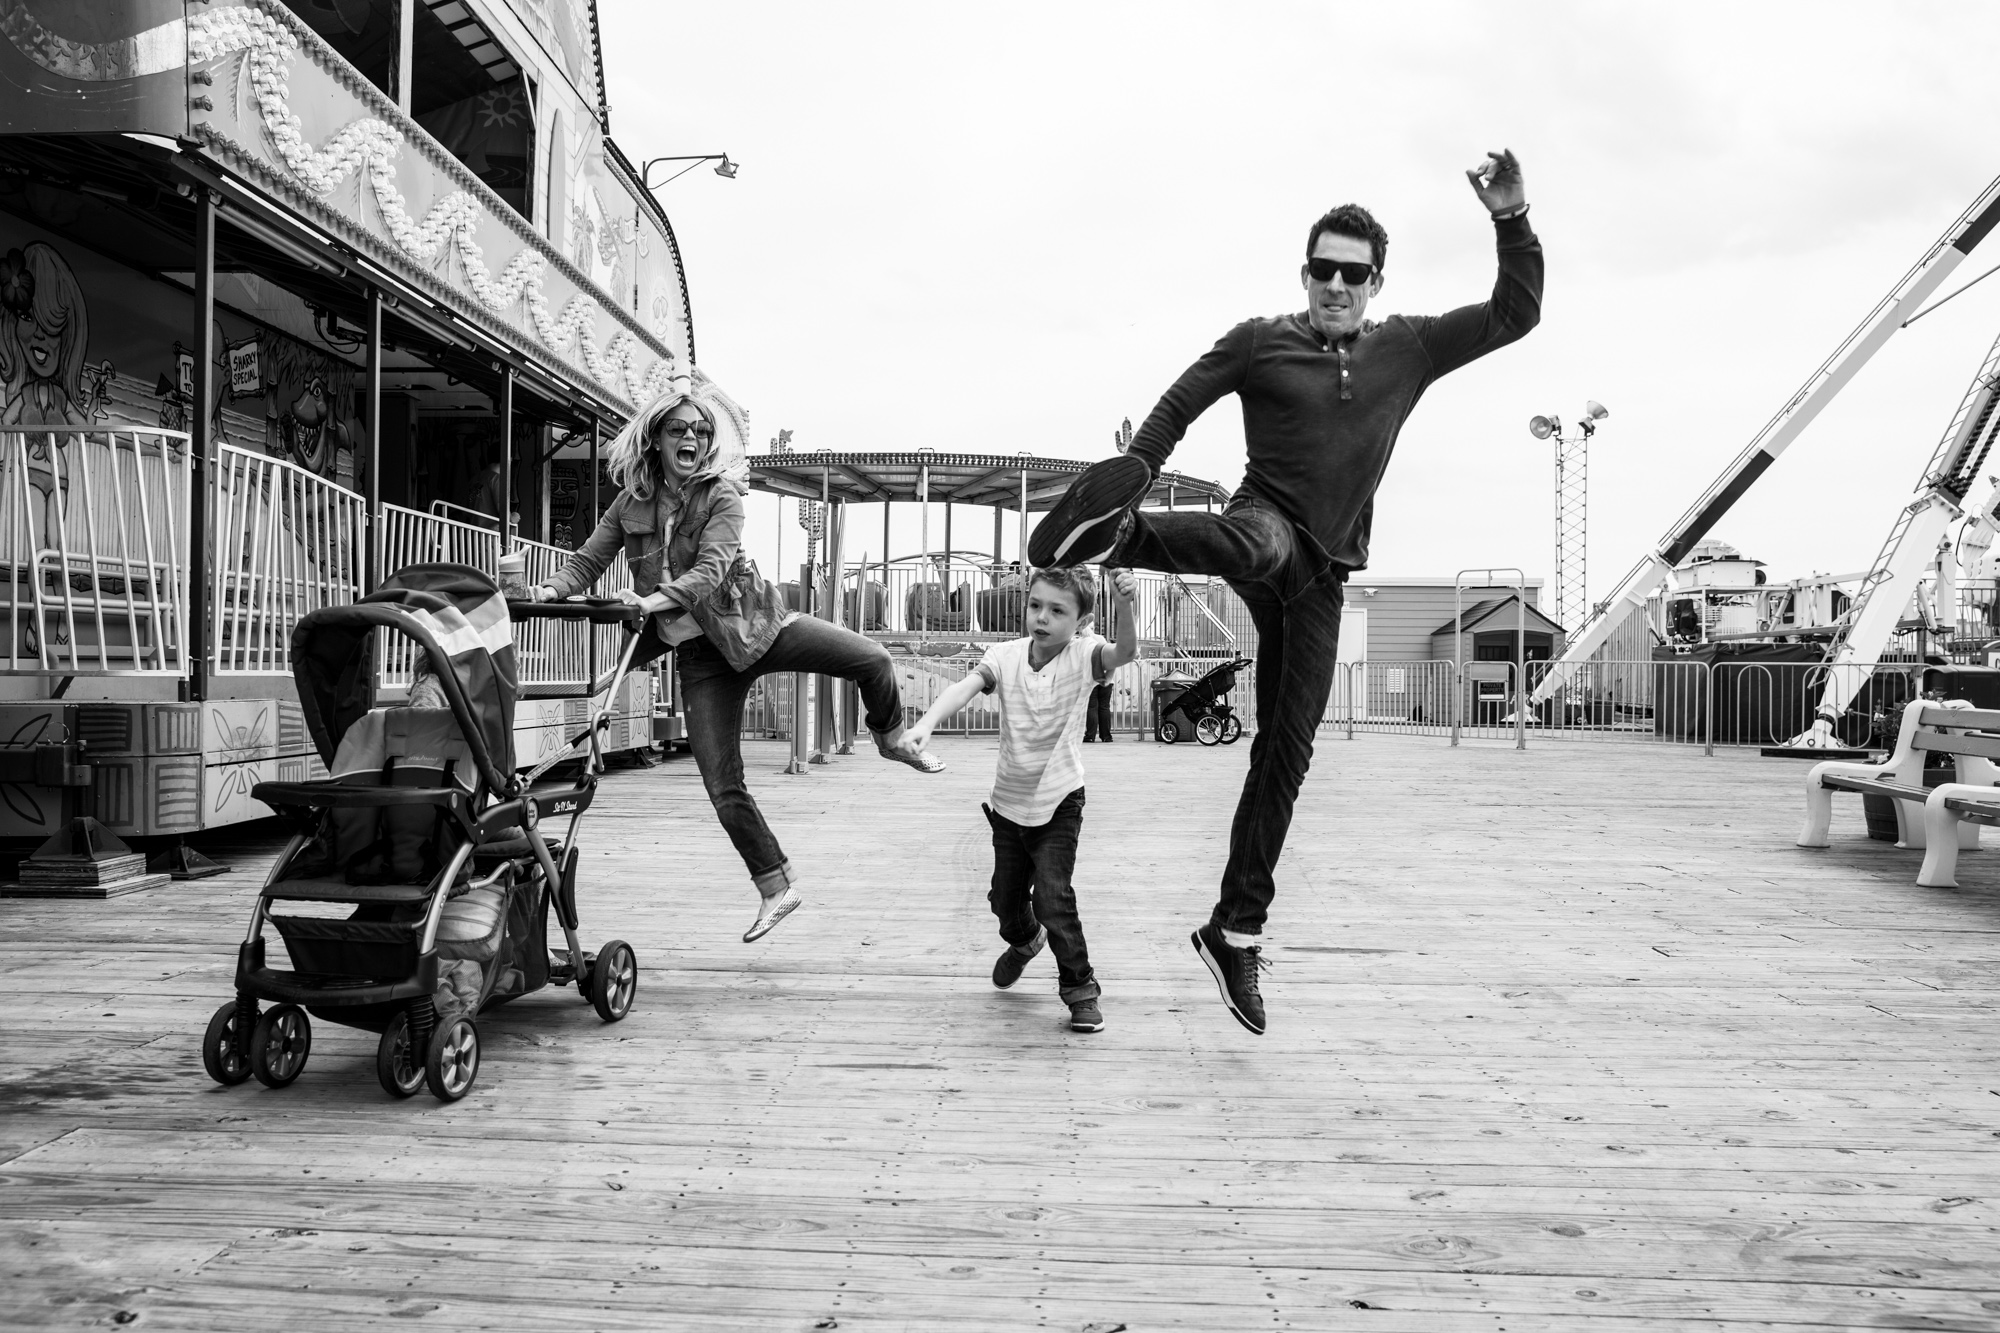 Family does bell kicks while pushing stroller at the boardwalk